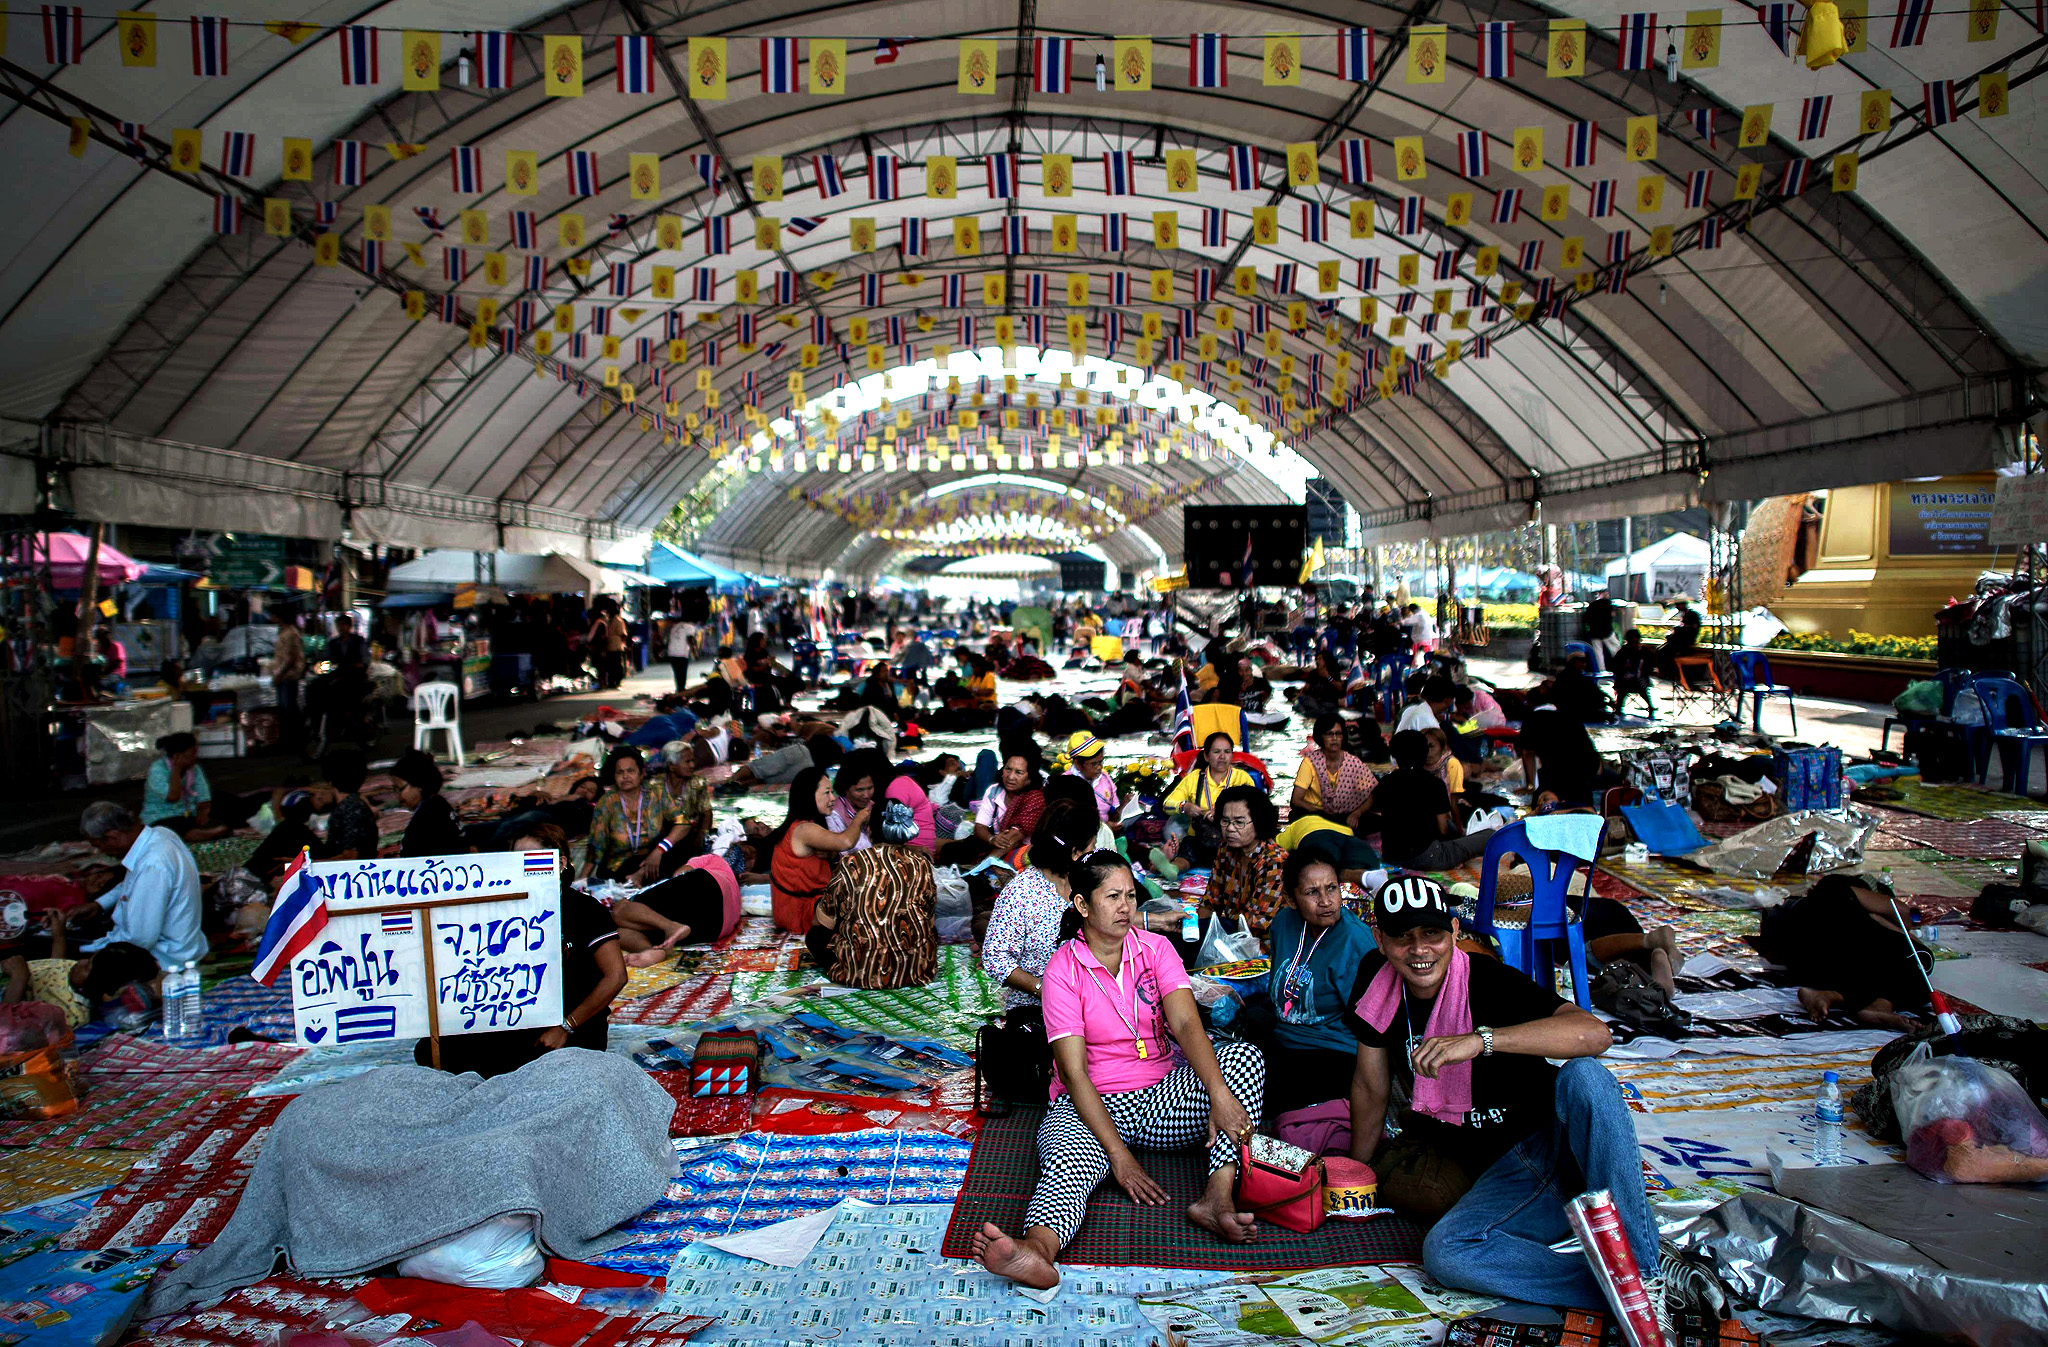 Anti-government demonstrators sit in the shade at a protest site near the democracy monument in Bangkok on December 13, 2013.  Political turmoil has been rocking the Thai capital for weeks, with protesters seeking to oust Prime Minister Yingluck Shinawatra and rid the kingdom of the influence of her brother, deposed former leader Thaksin.